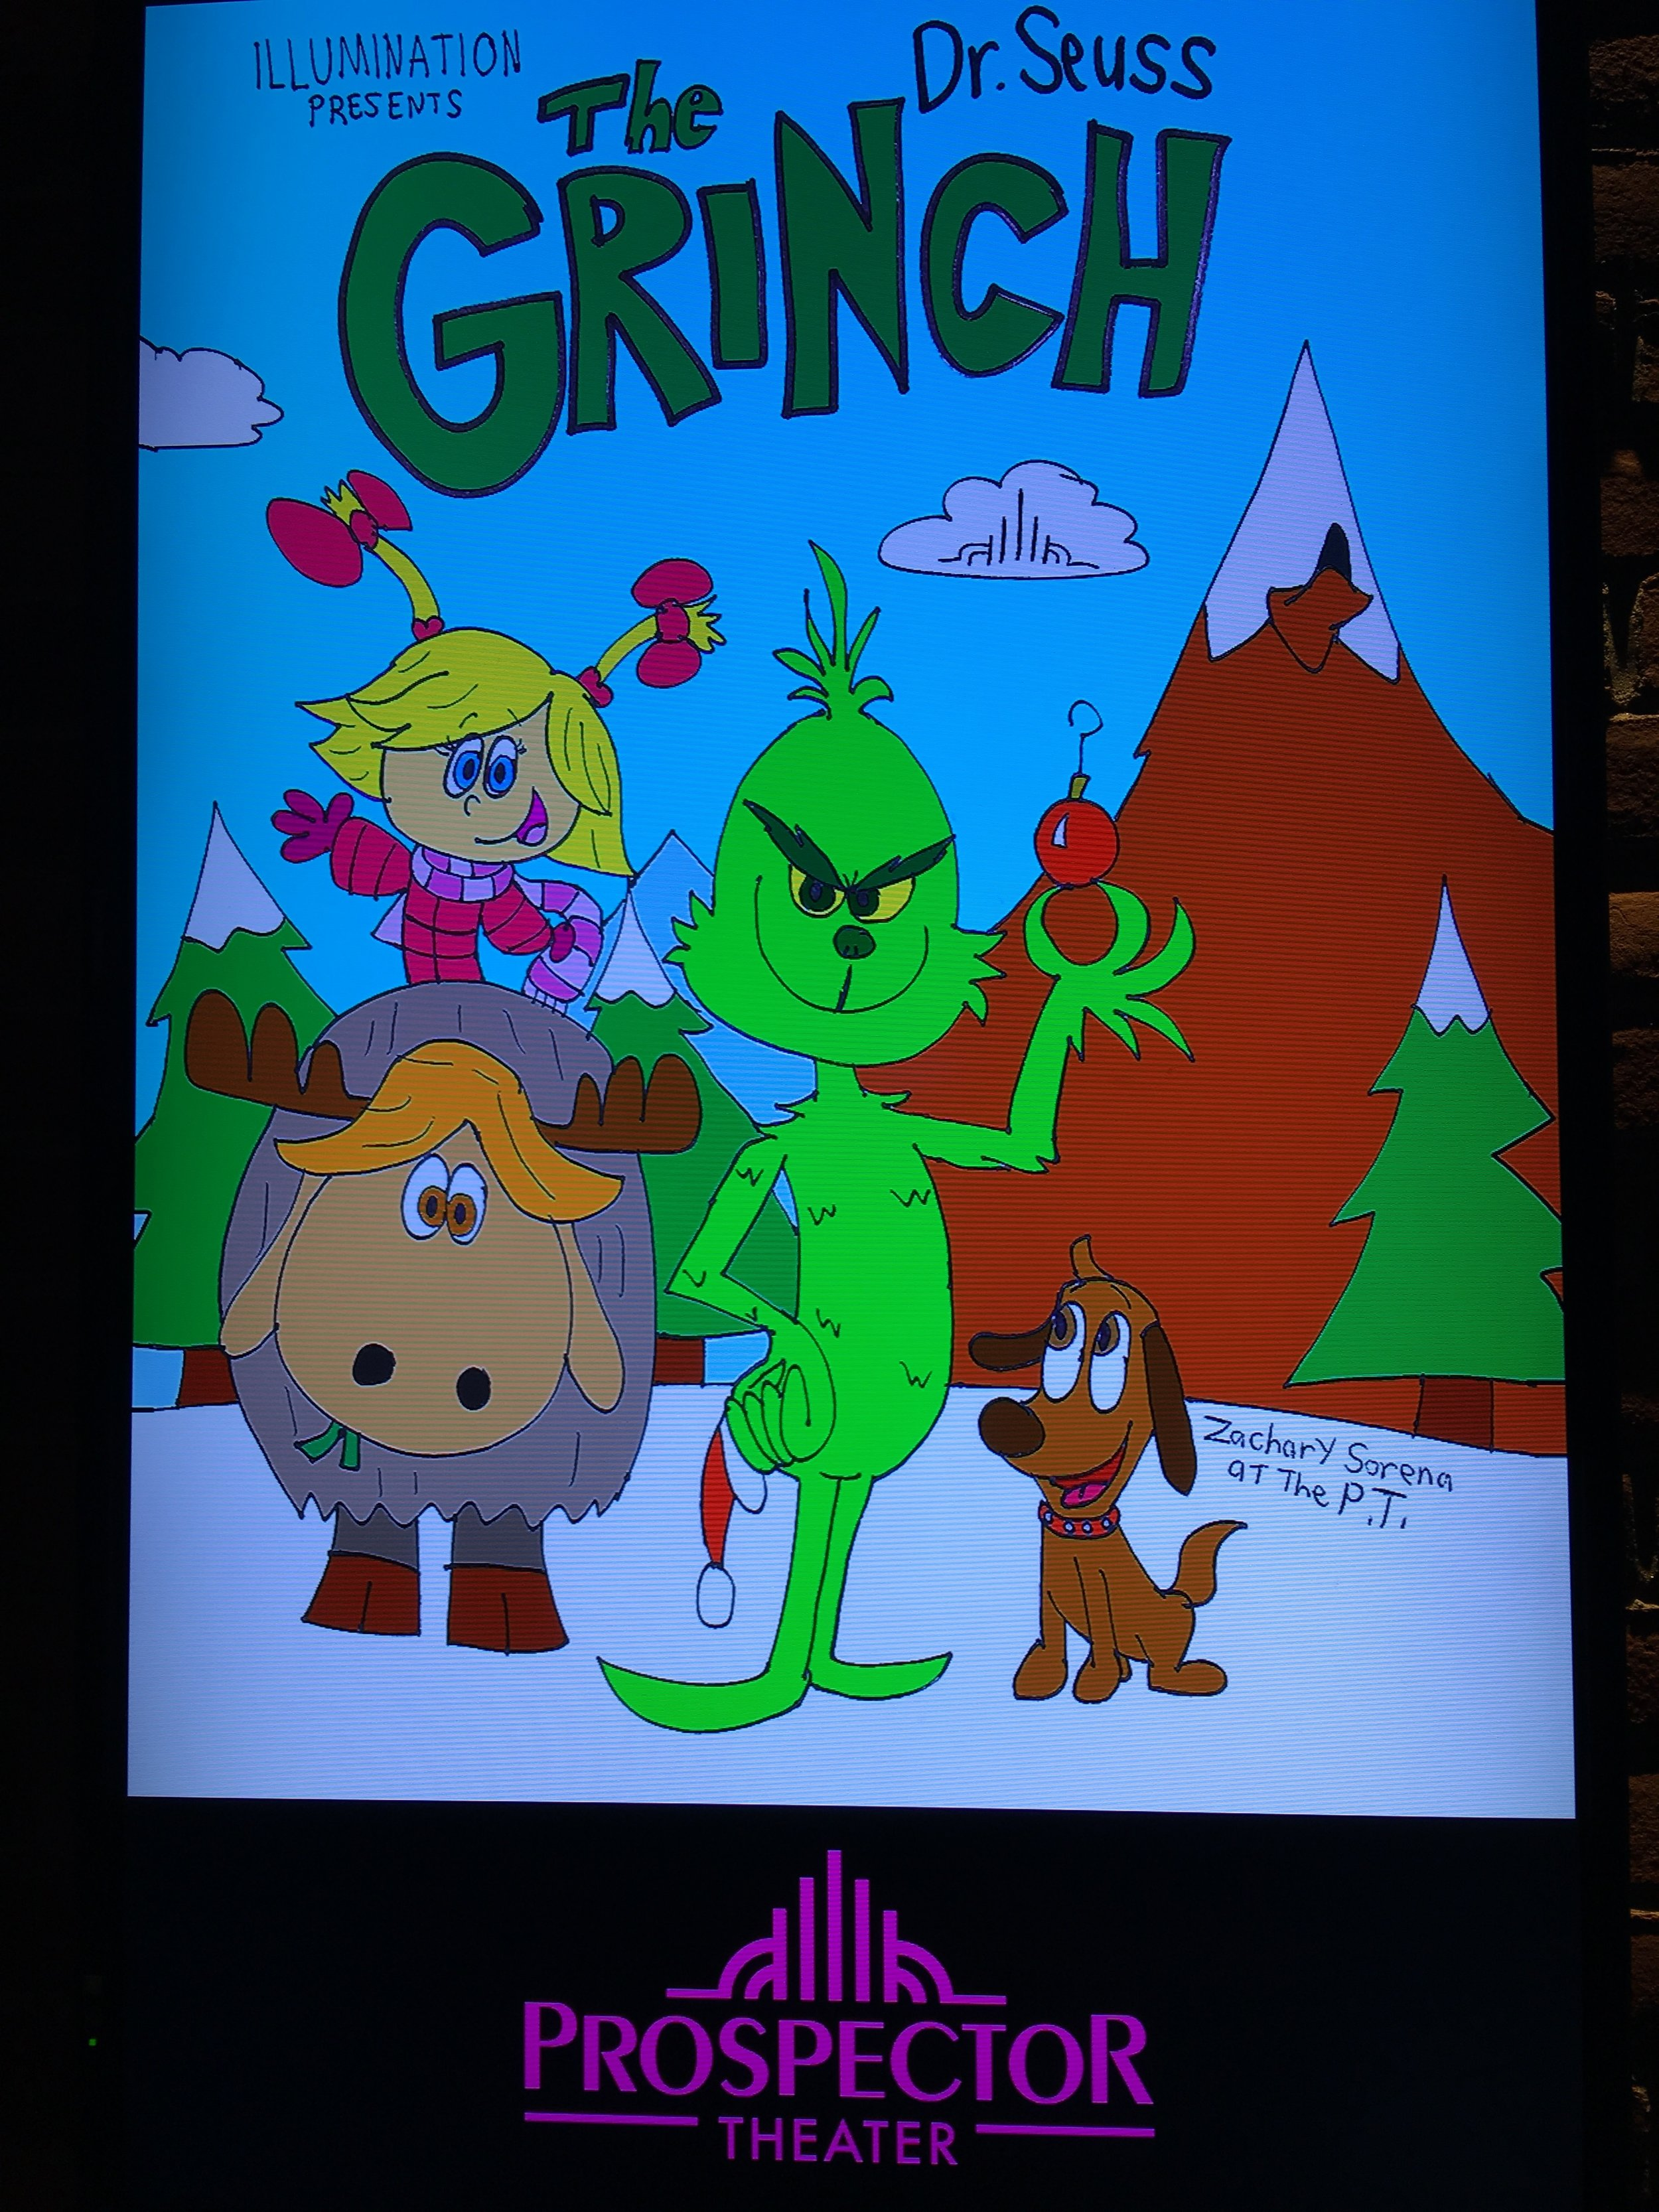 Zach created coloring sheets as well as a digital movie poster!